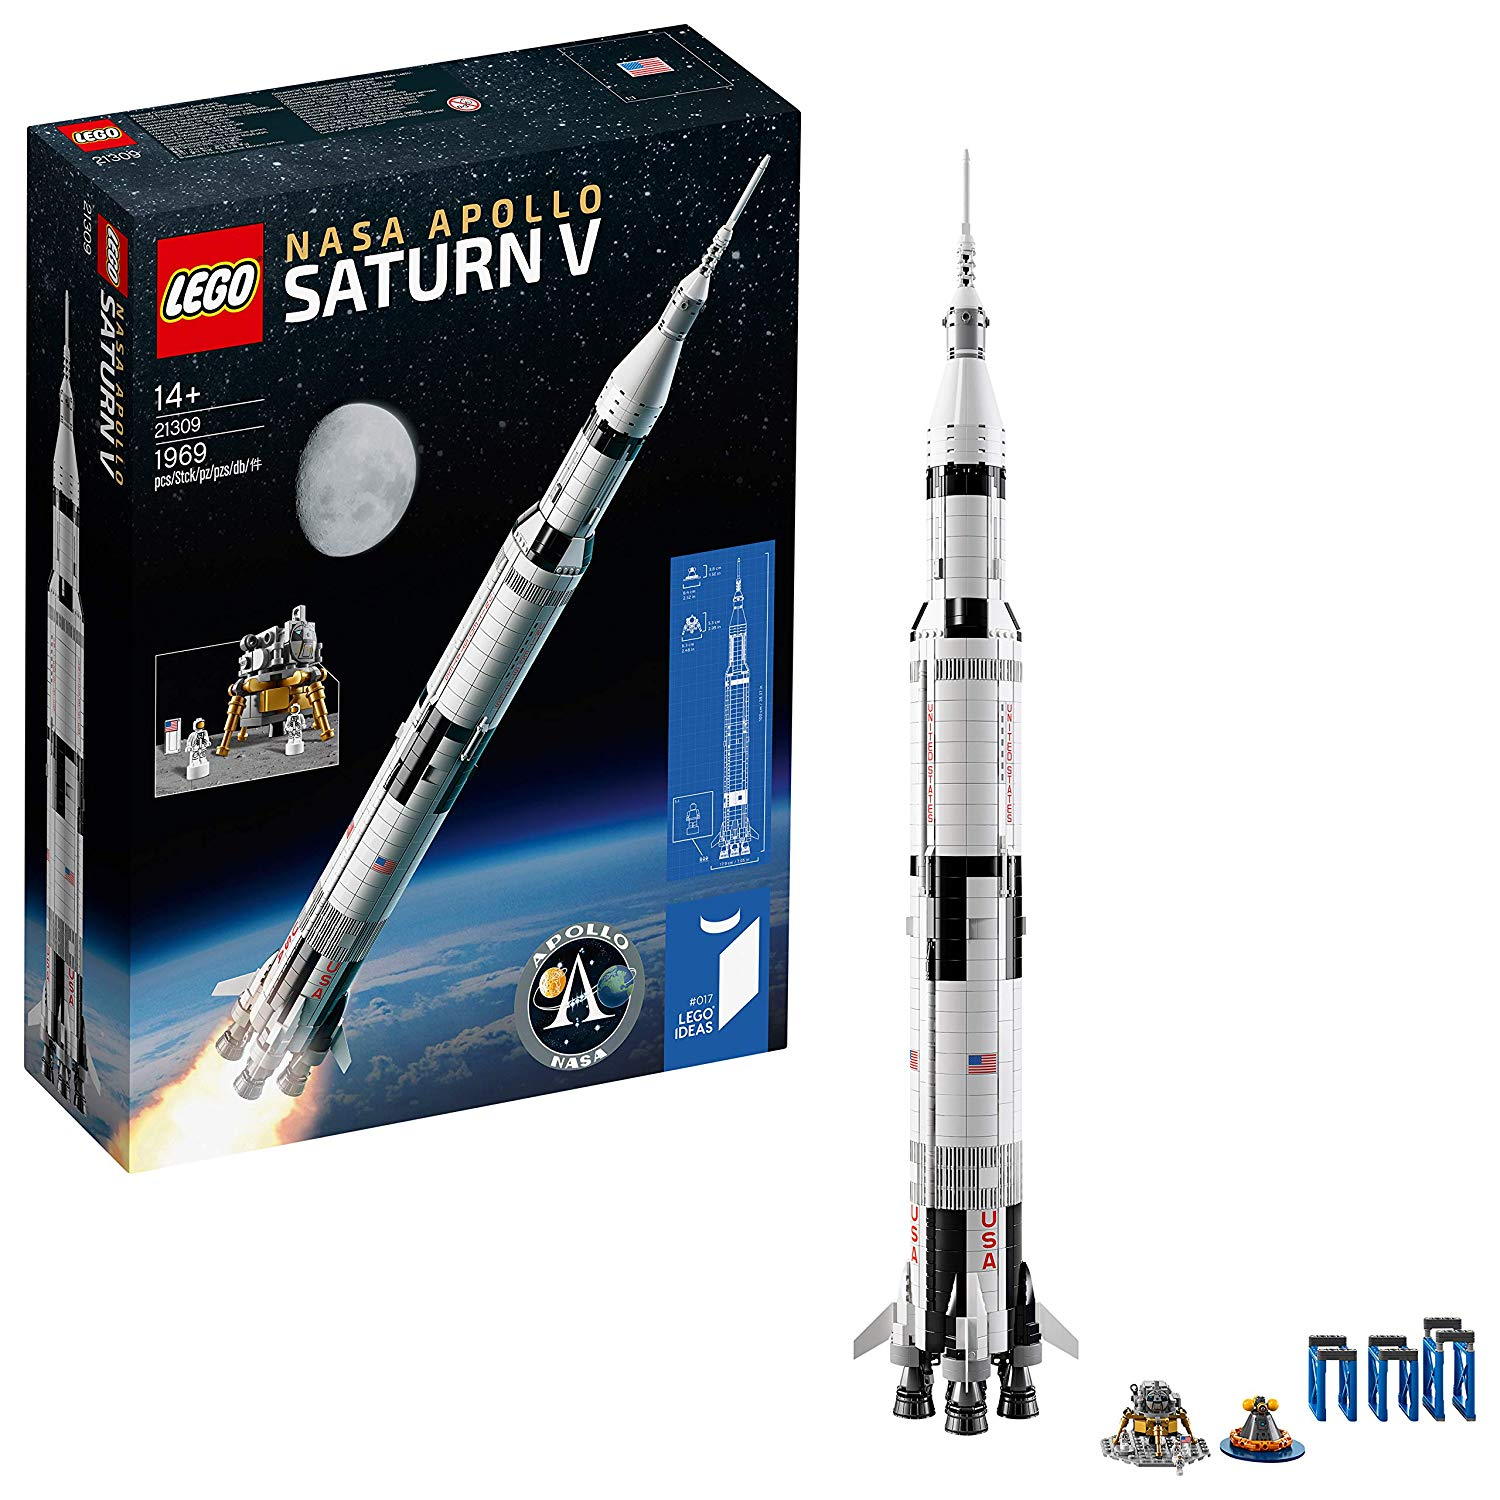 Lego Ideas - La fusée NASA Apollo Saturn V